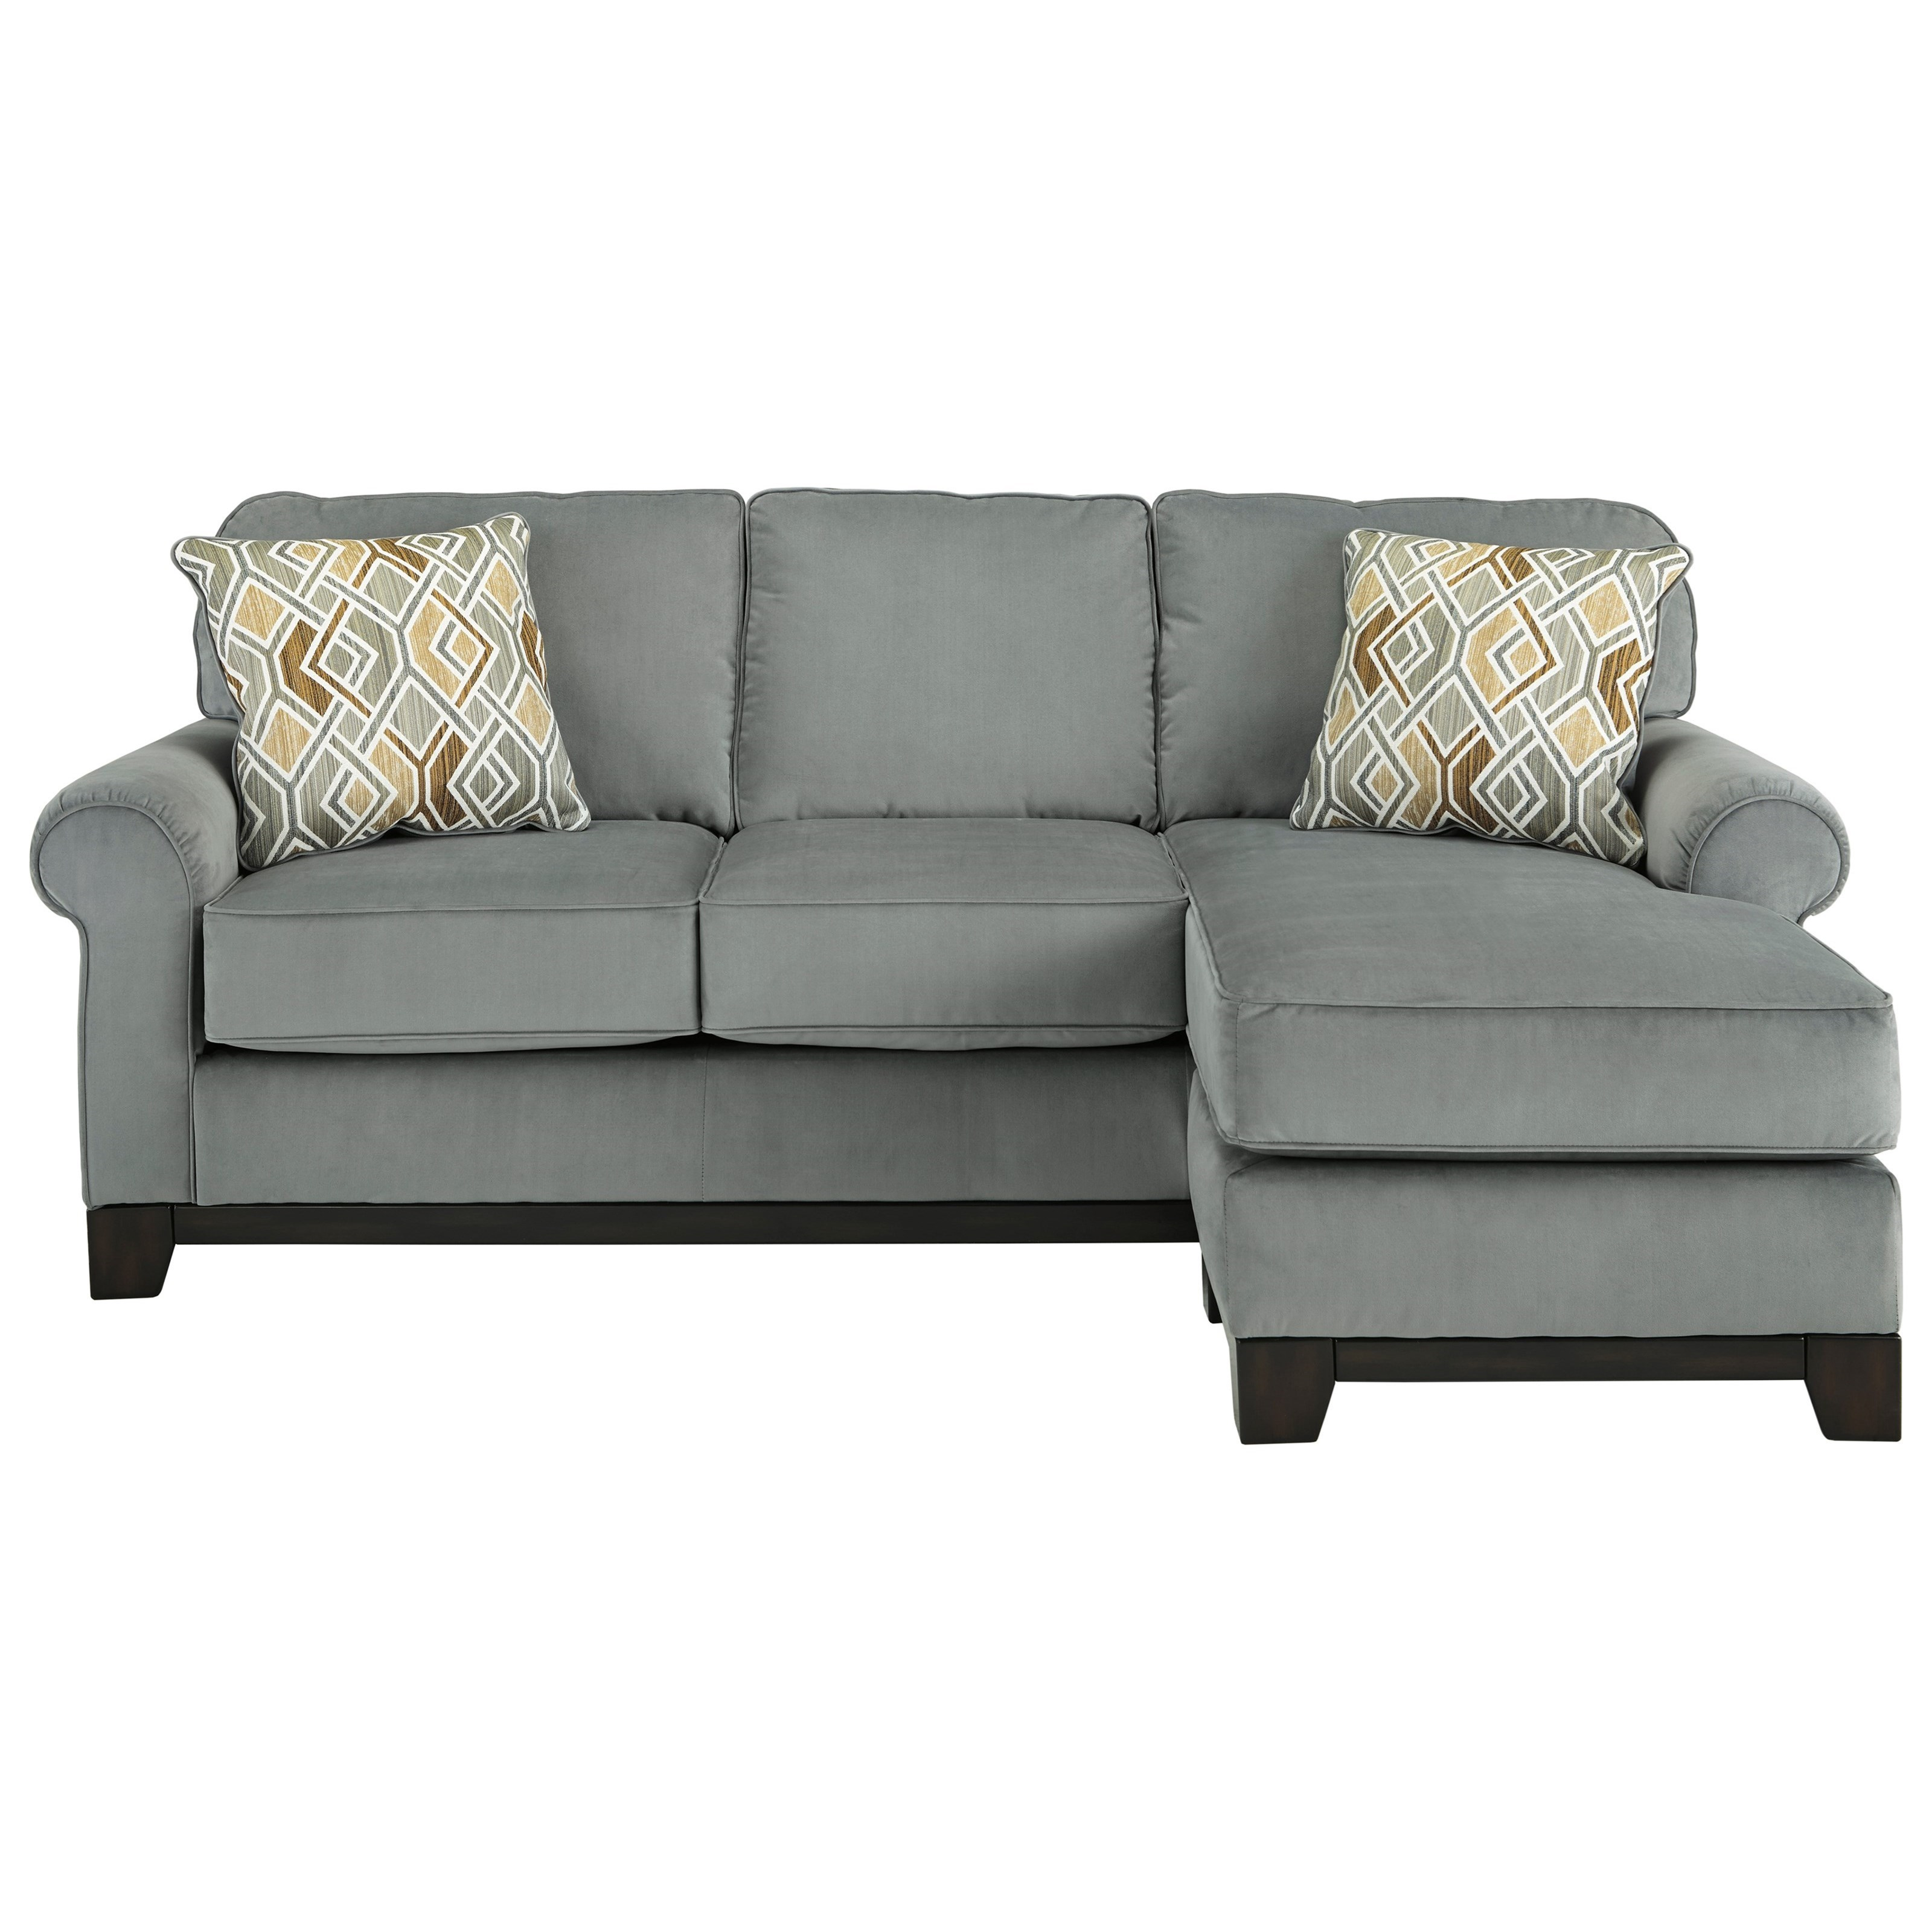 Benchcraft by ashley benld contemporary sofa chaise for Chaise living room furniture